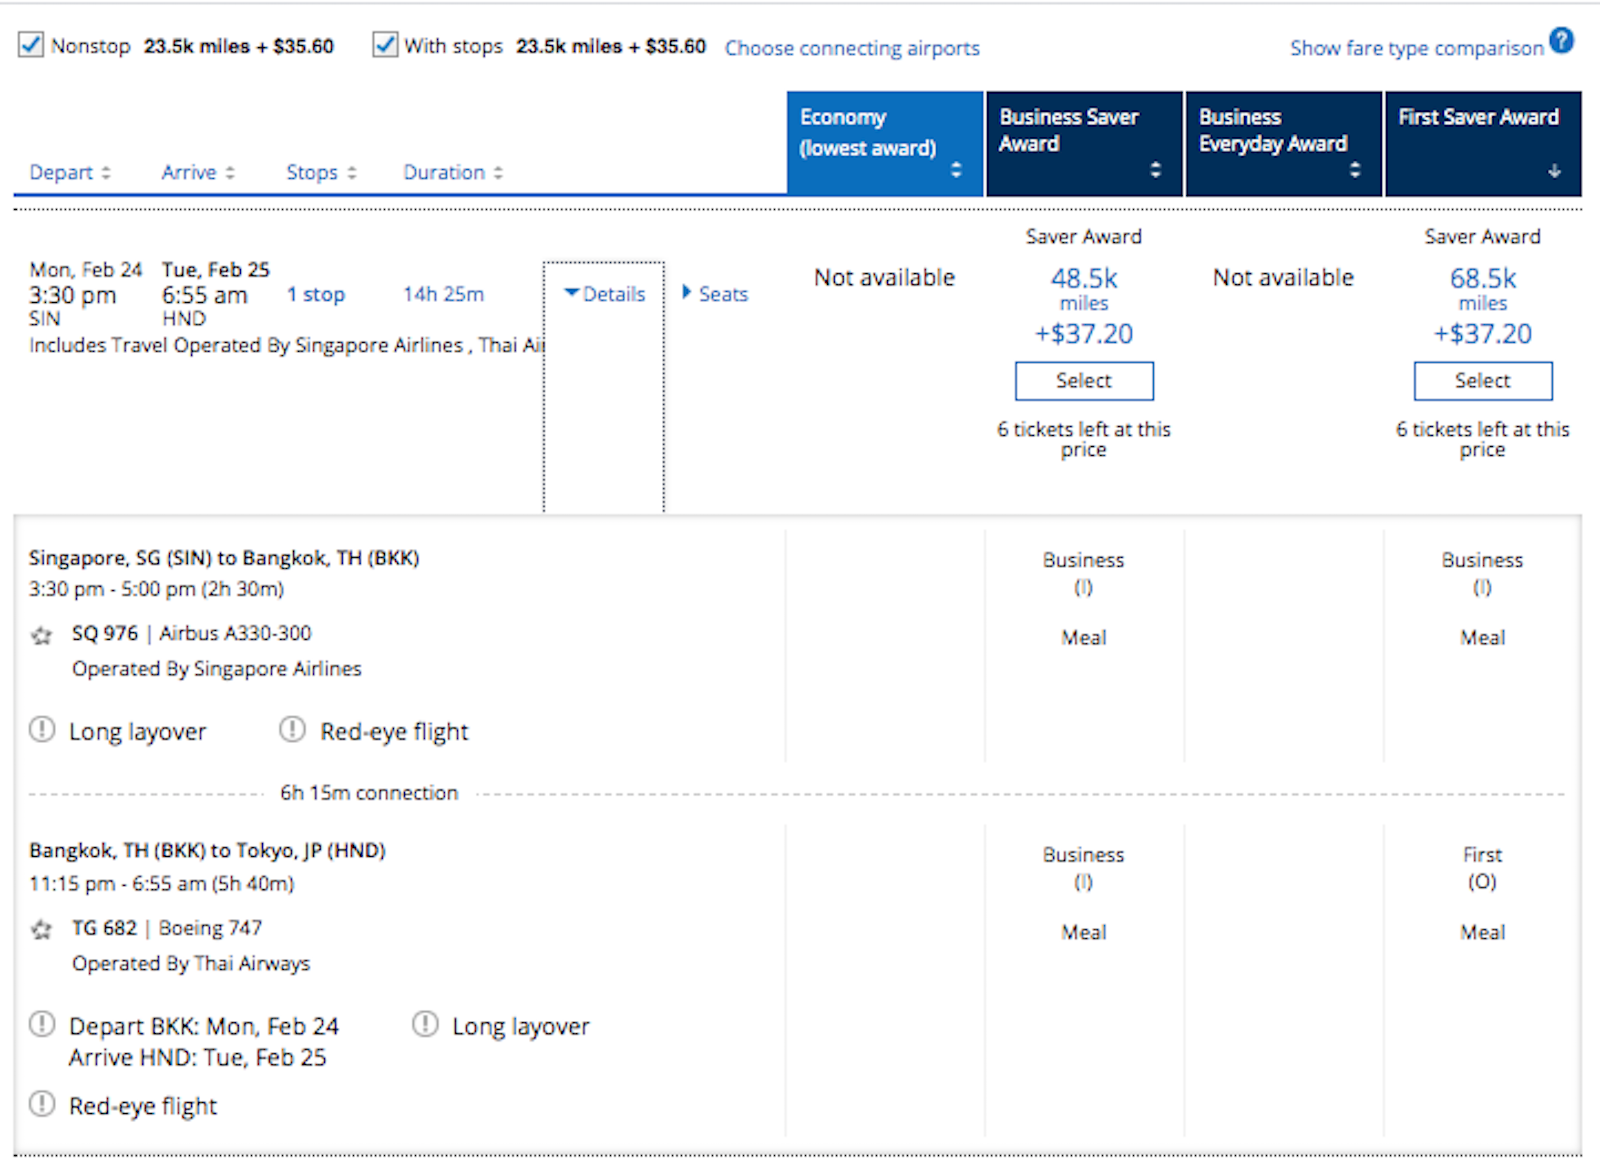 Maximizing the new United Business Card to fly Thai first class